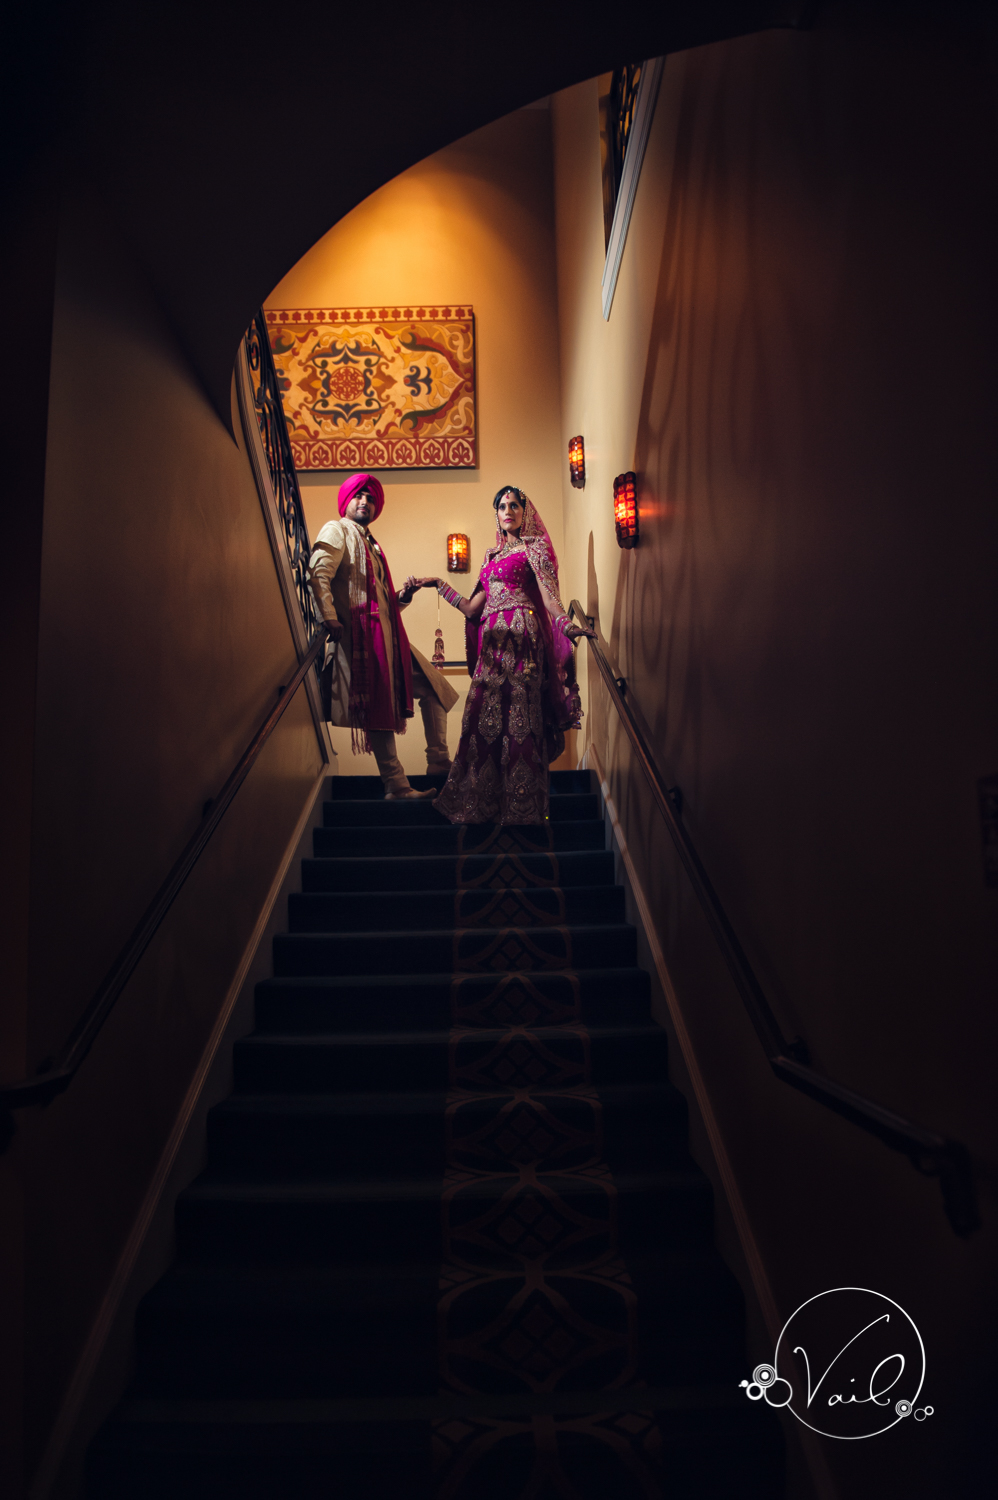 East indian wedding Within SODO Seattle-14.jpg